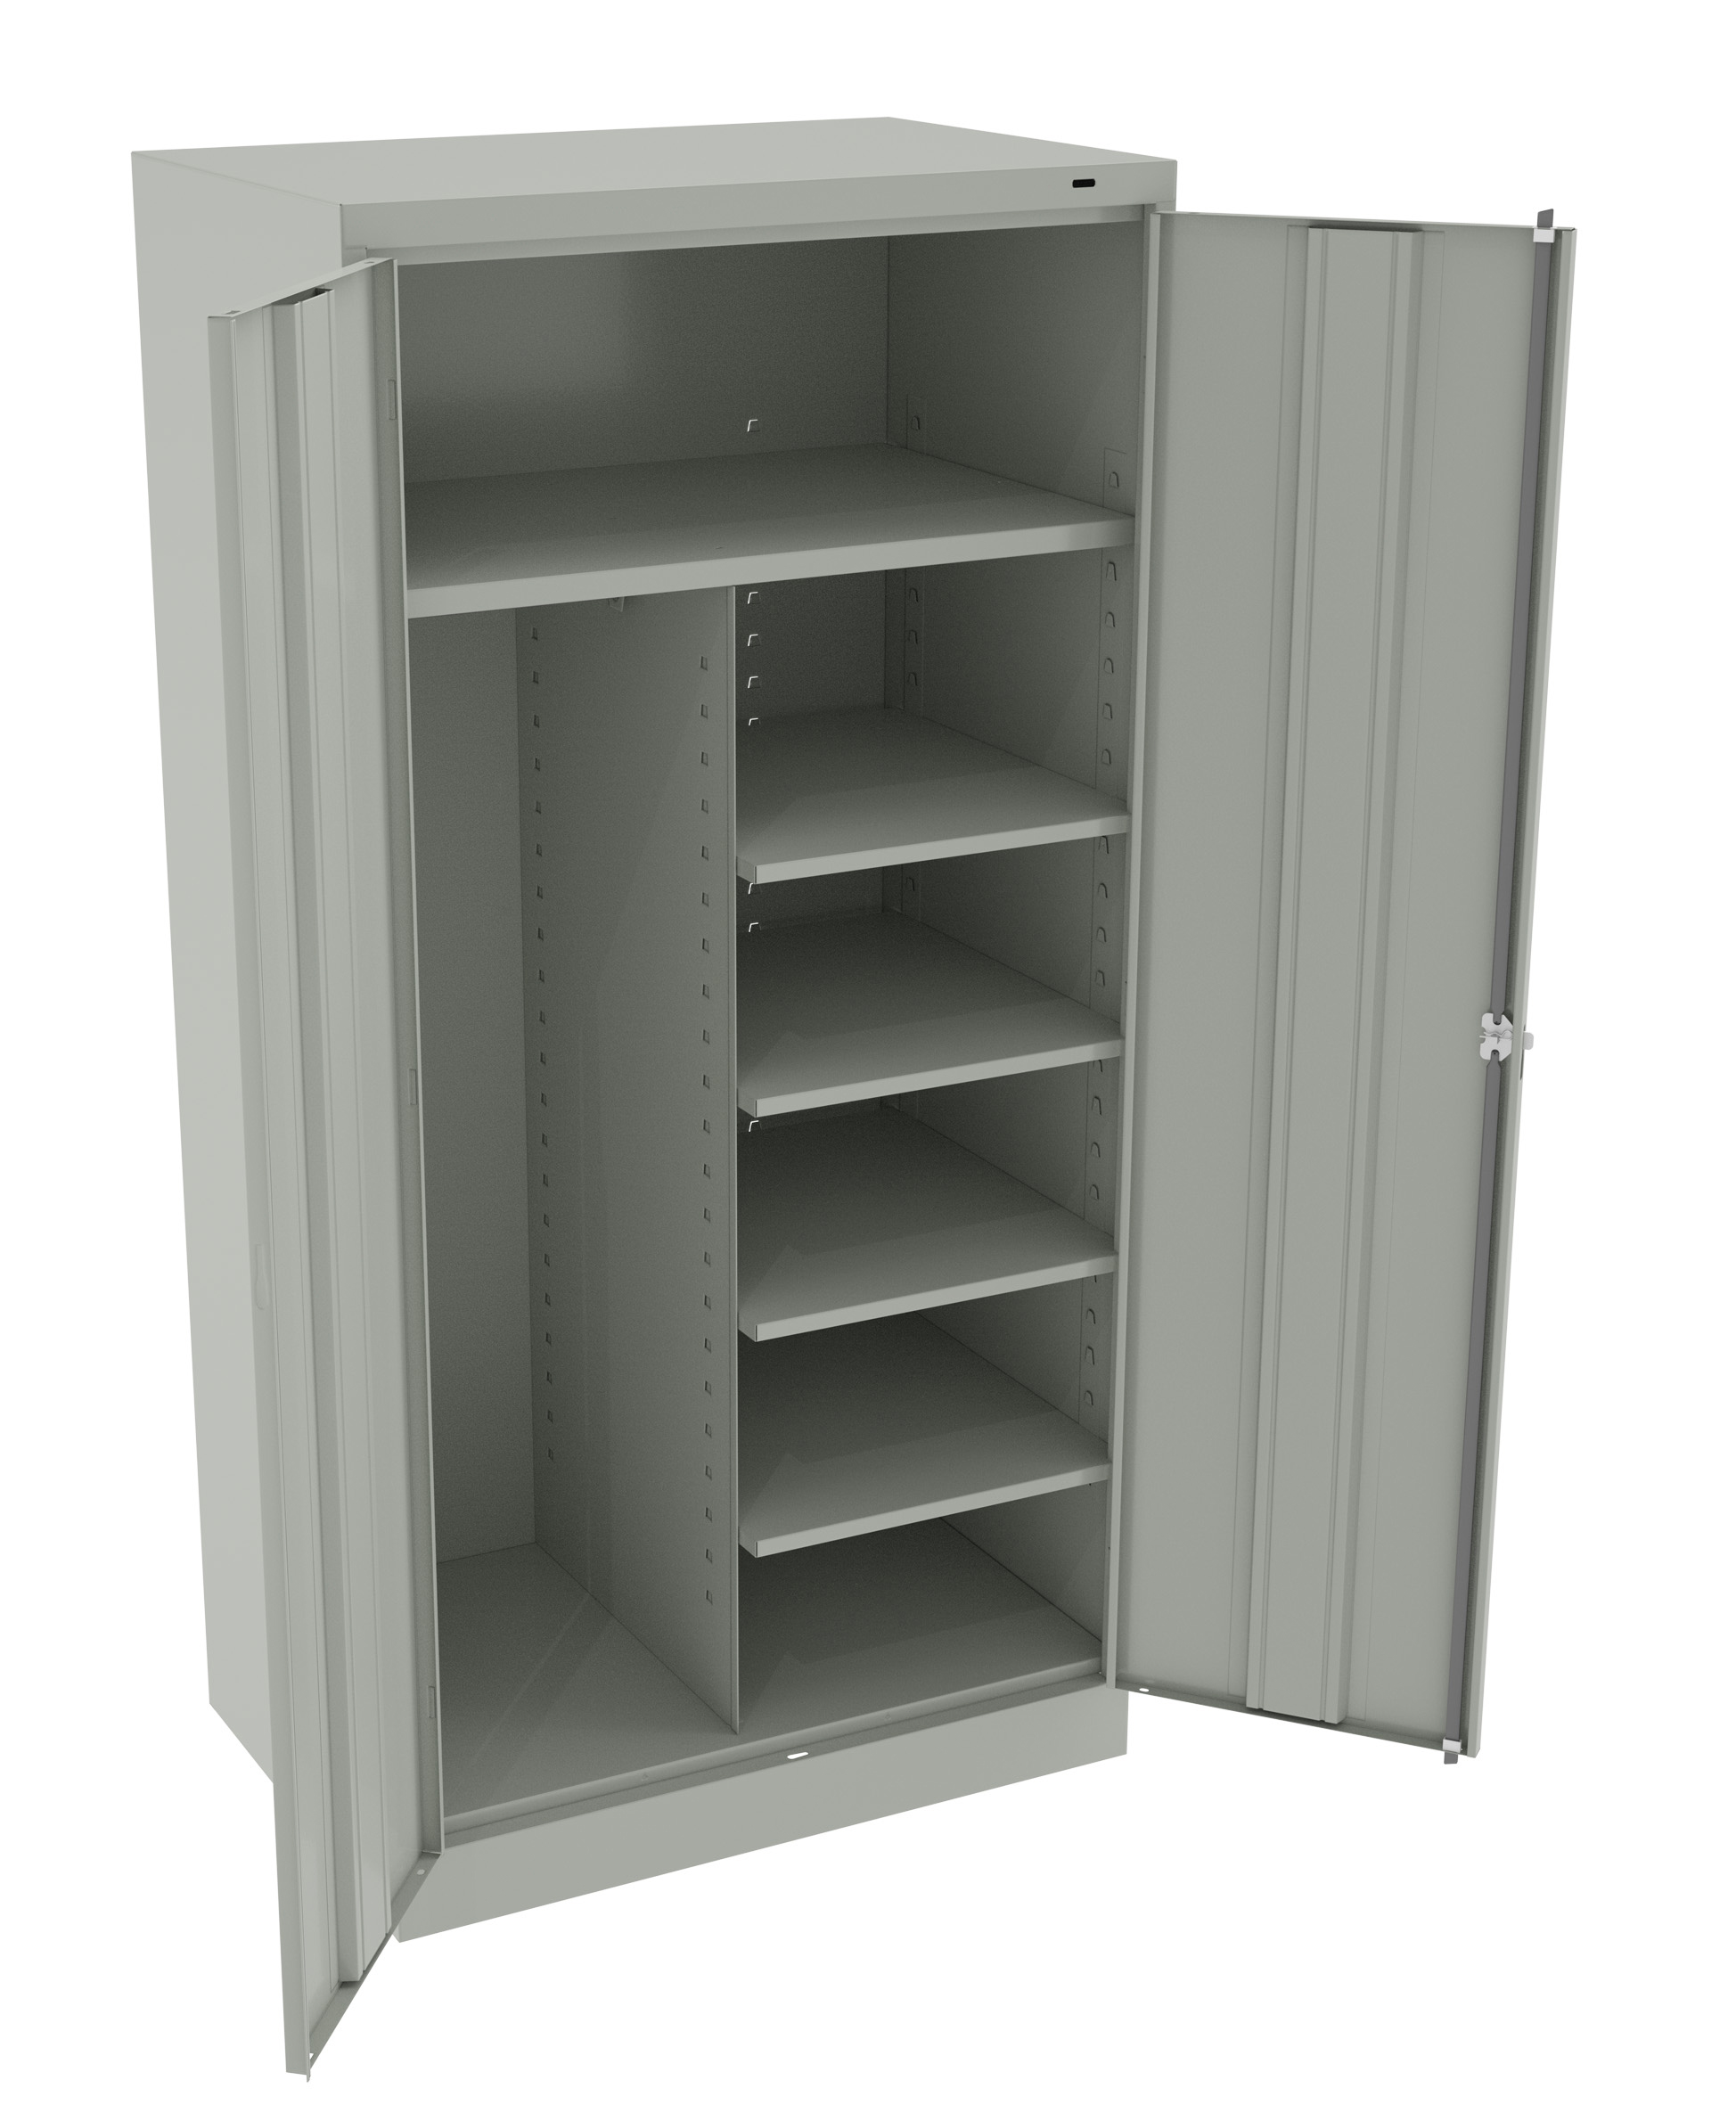 Tennsco - Storage Made Easy - Standard Combination Cabinet (Assembled)